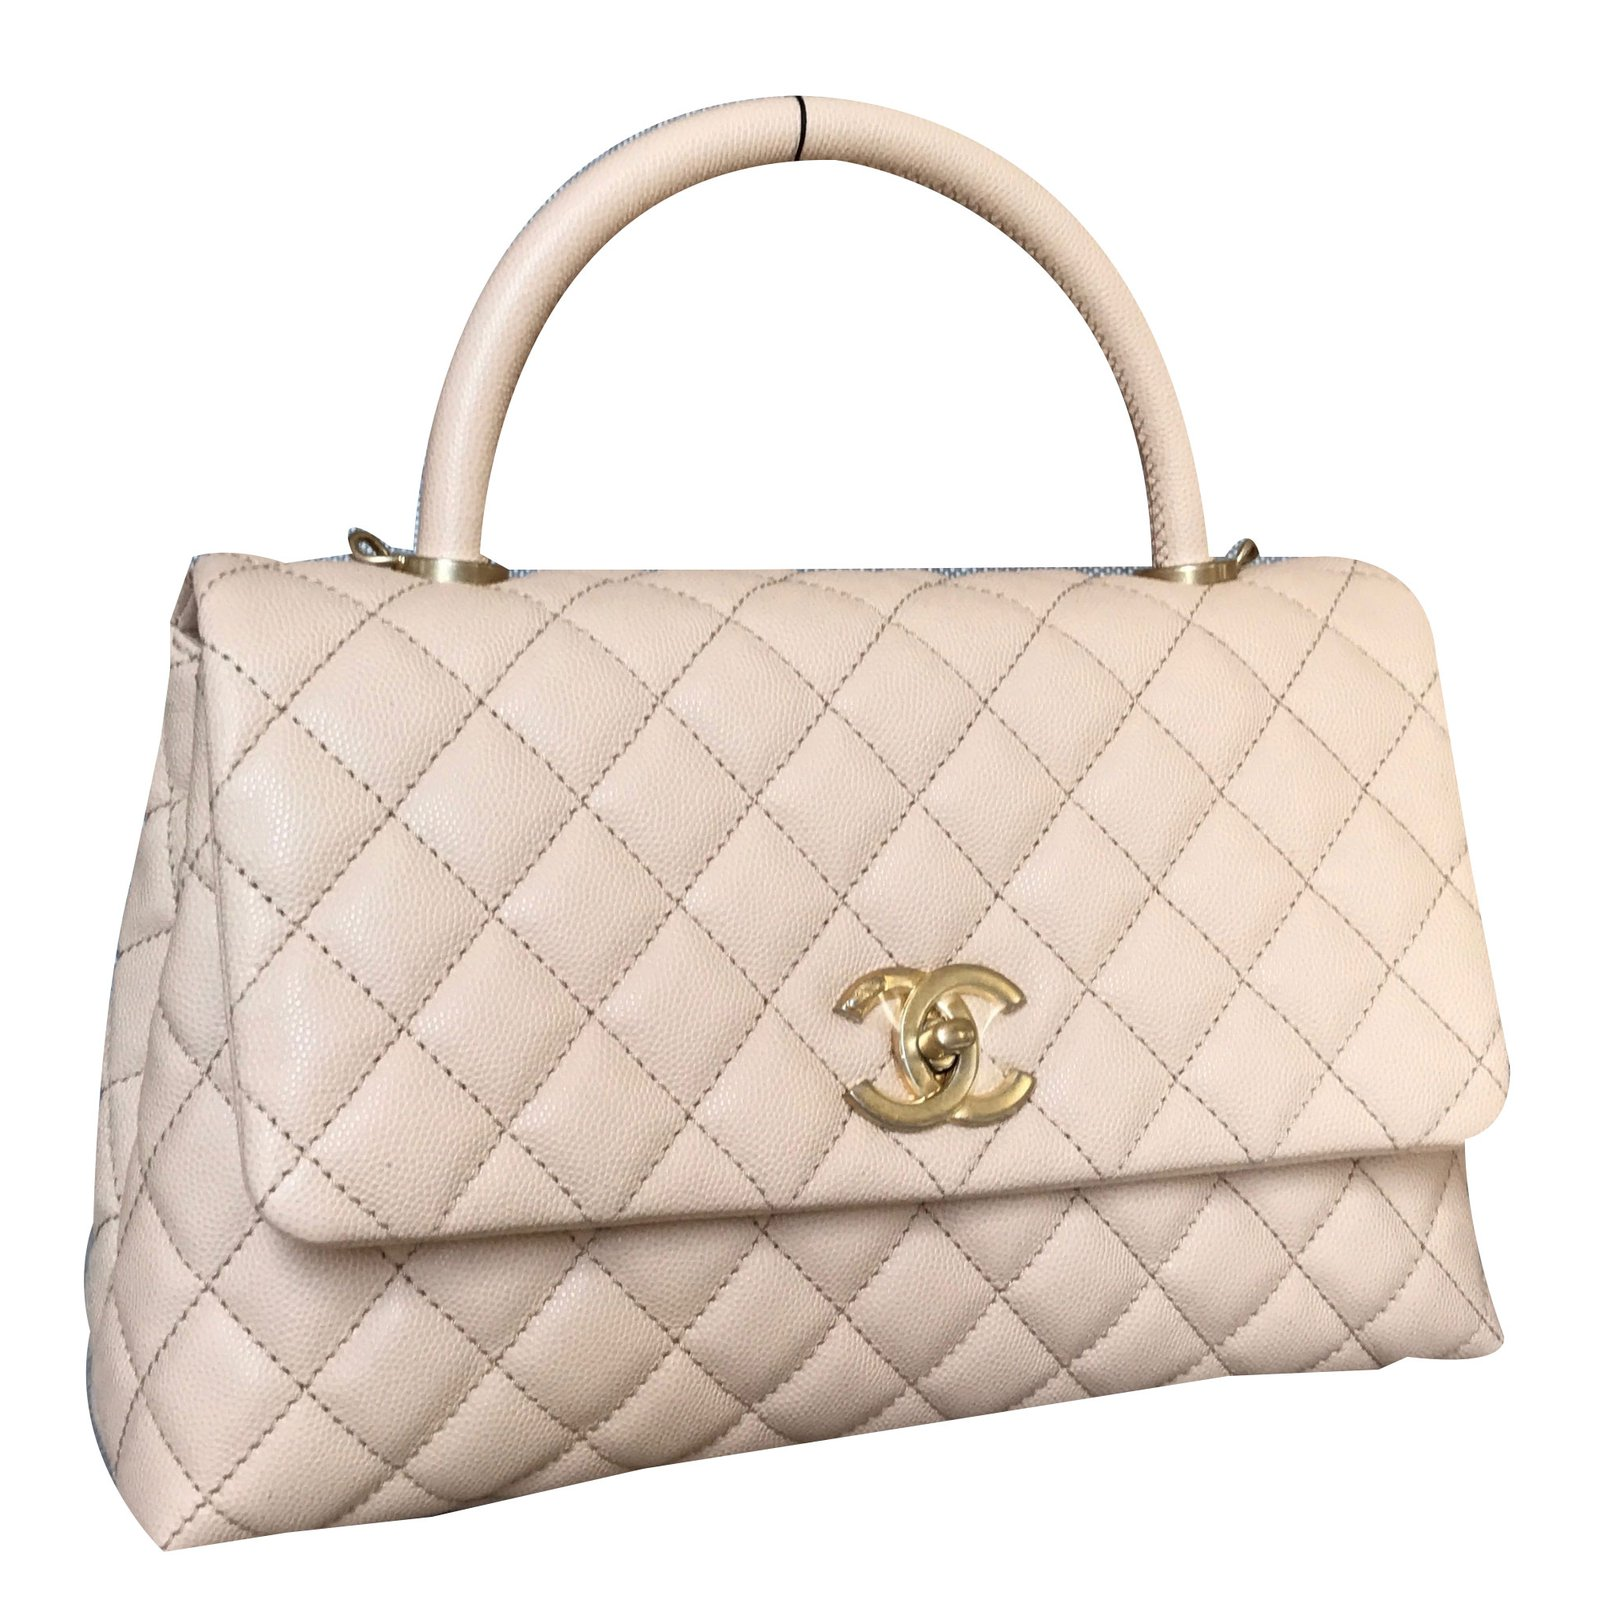 chanel coco handle handbags leather beige ref38563 joli